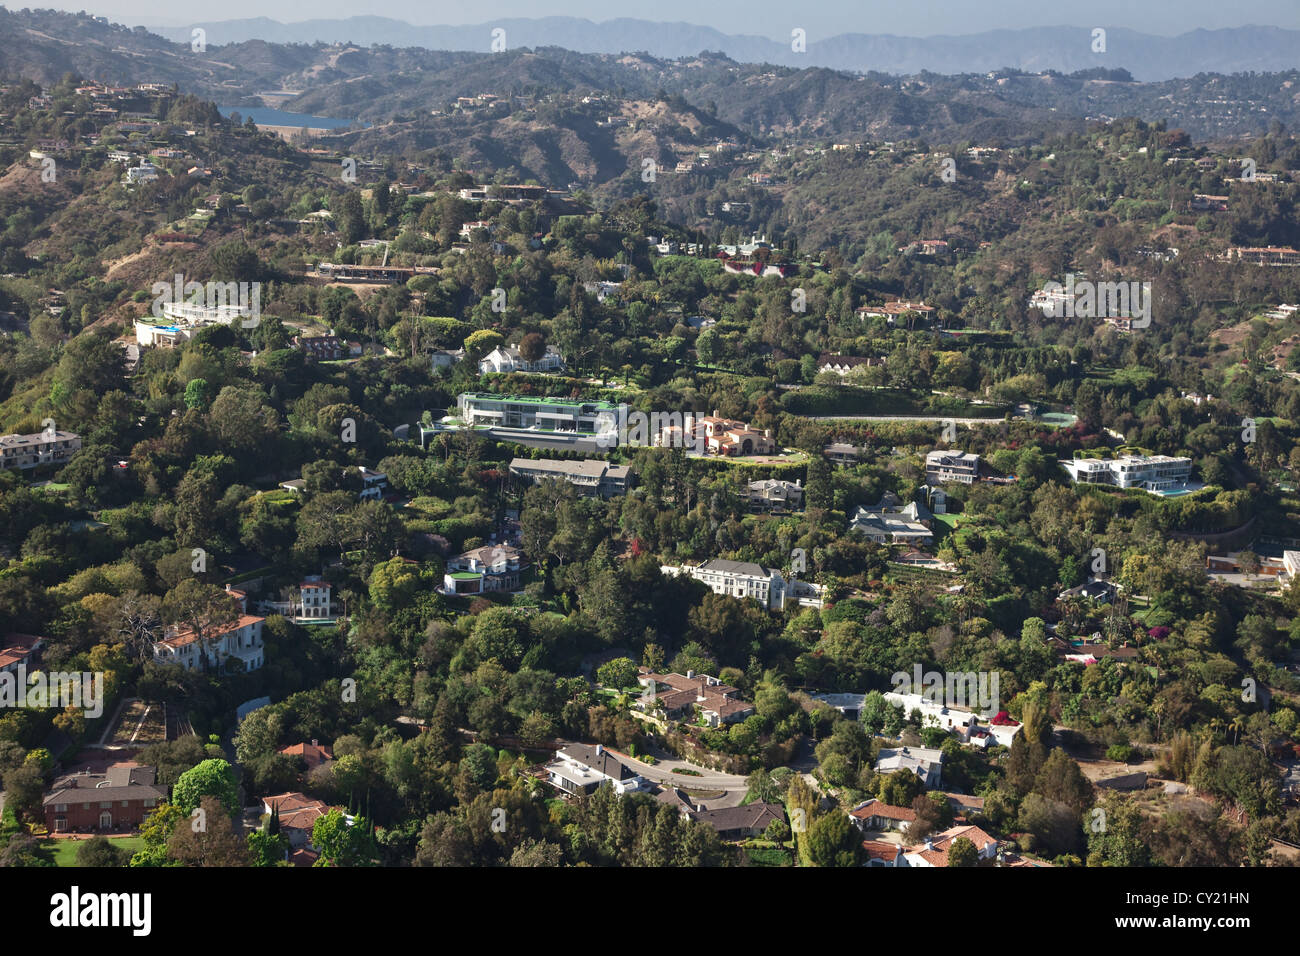 hollywood hills and houses stockfotos hollywood hills and houses bilder alamy. Black Bedroom Furniture Sets. Home Design Ideas